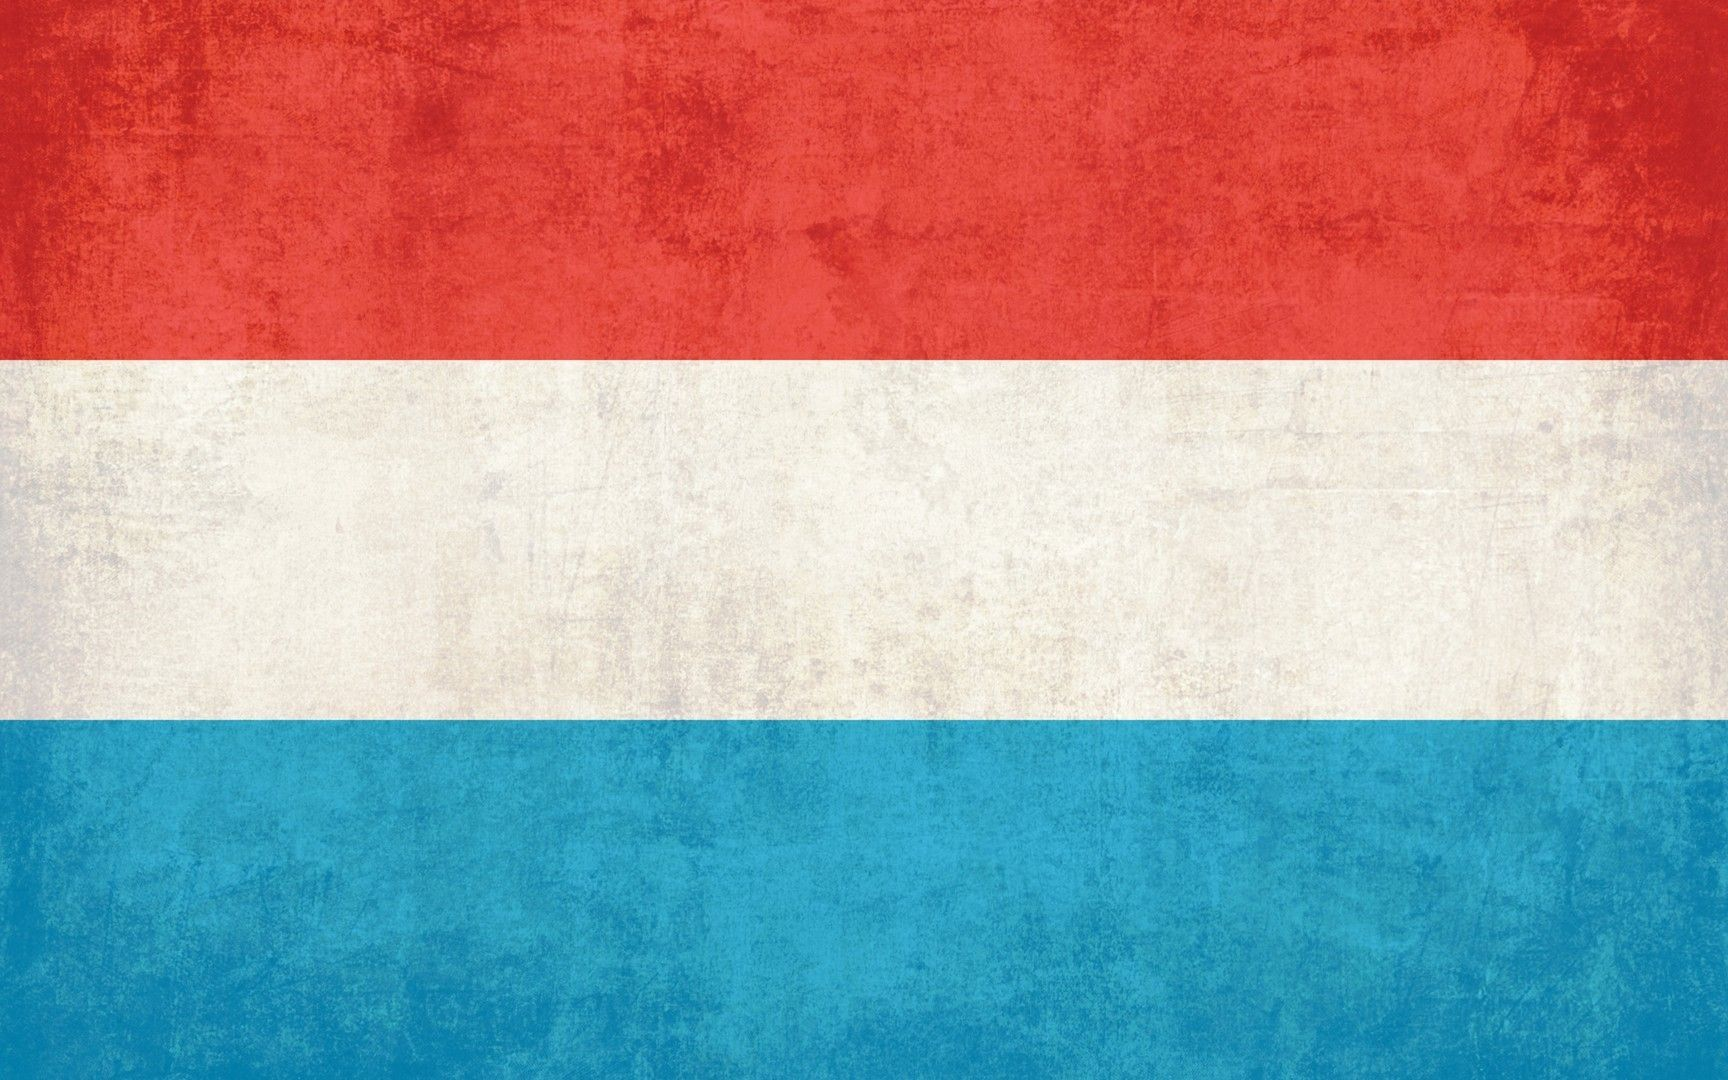 1728x1080 Flag of Luxembourg wallpaper | Hungary flag, Netherlands ...